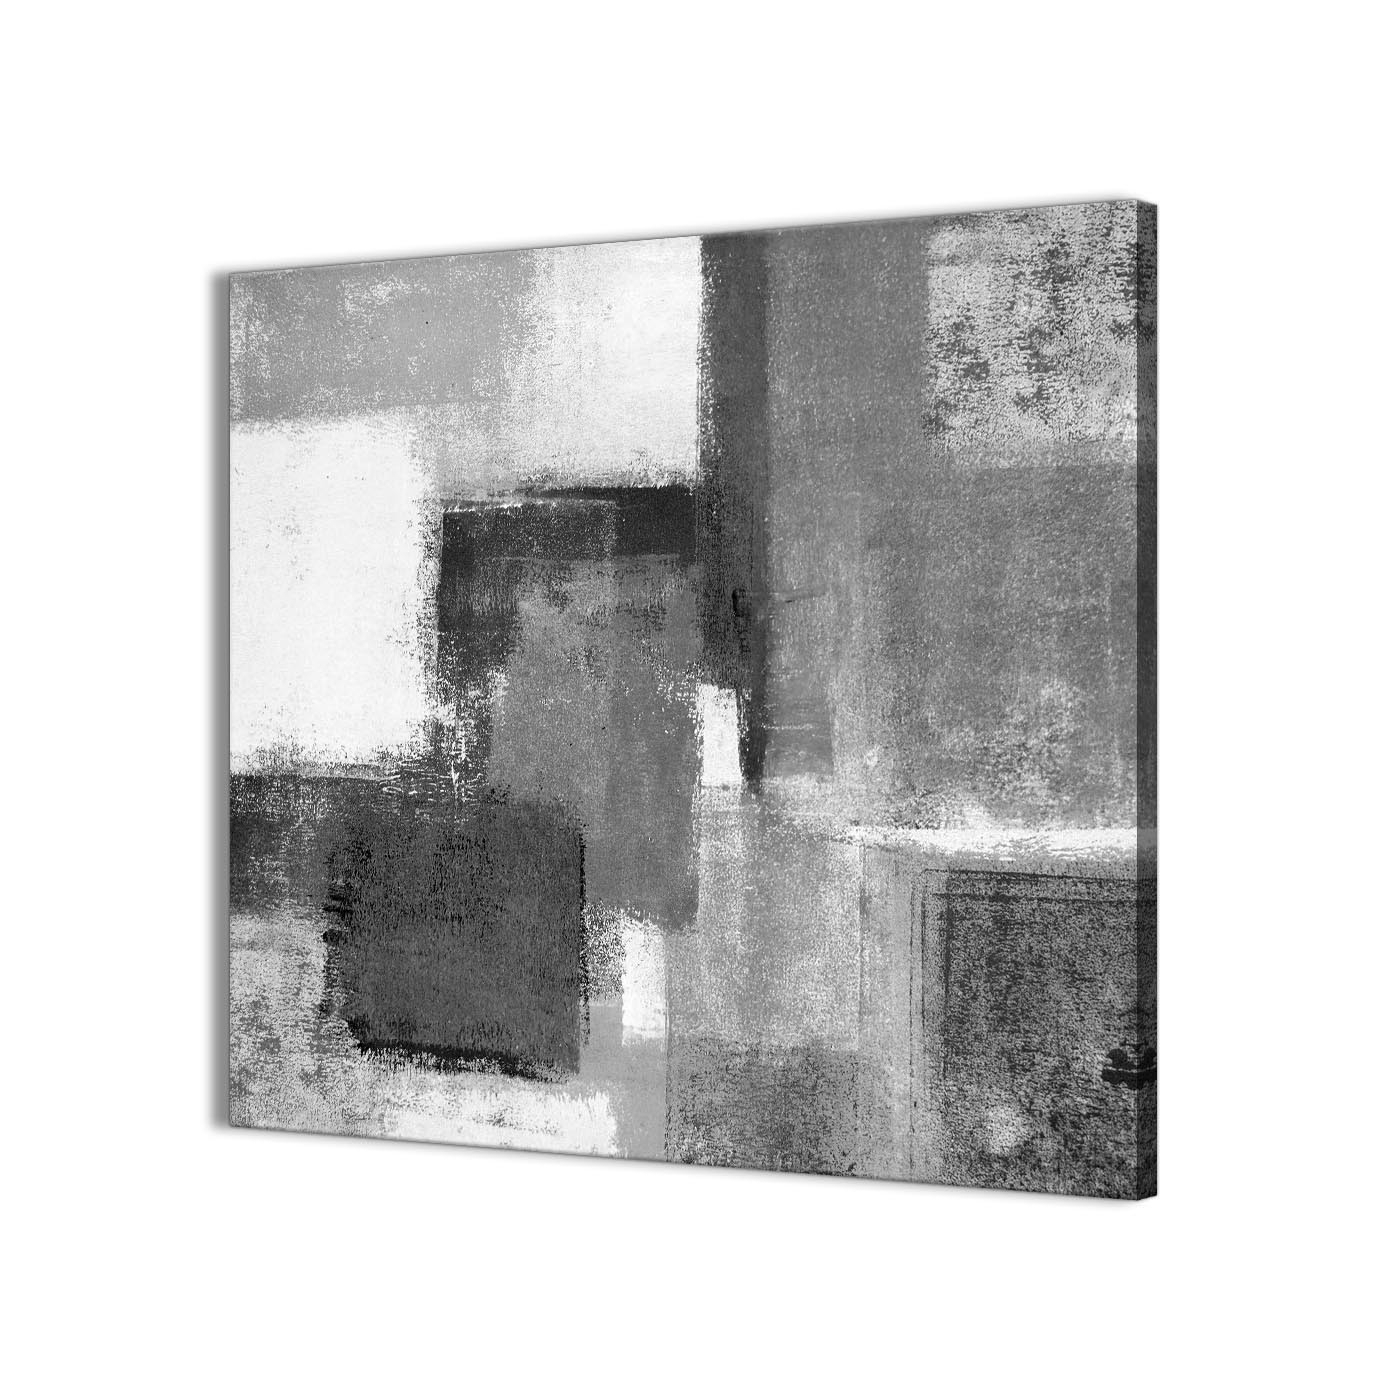 Preferred Black White Grey Abstract Office Canvas Wall Art Decorations 1S368L Pertaining To Grey Wall Art (Gallery 1 of 20)